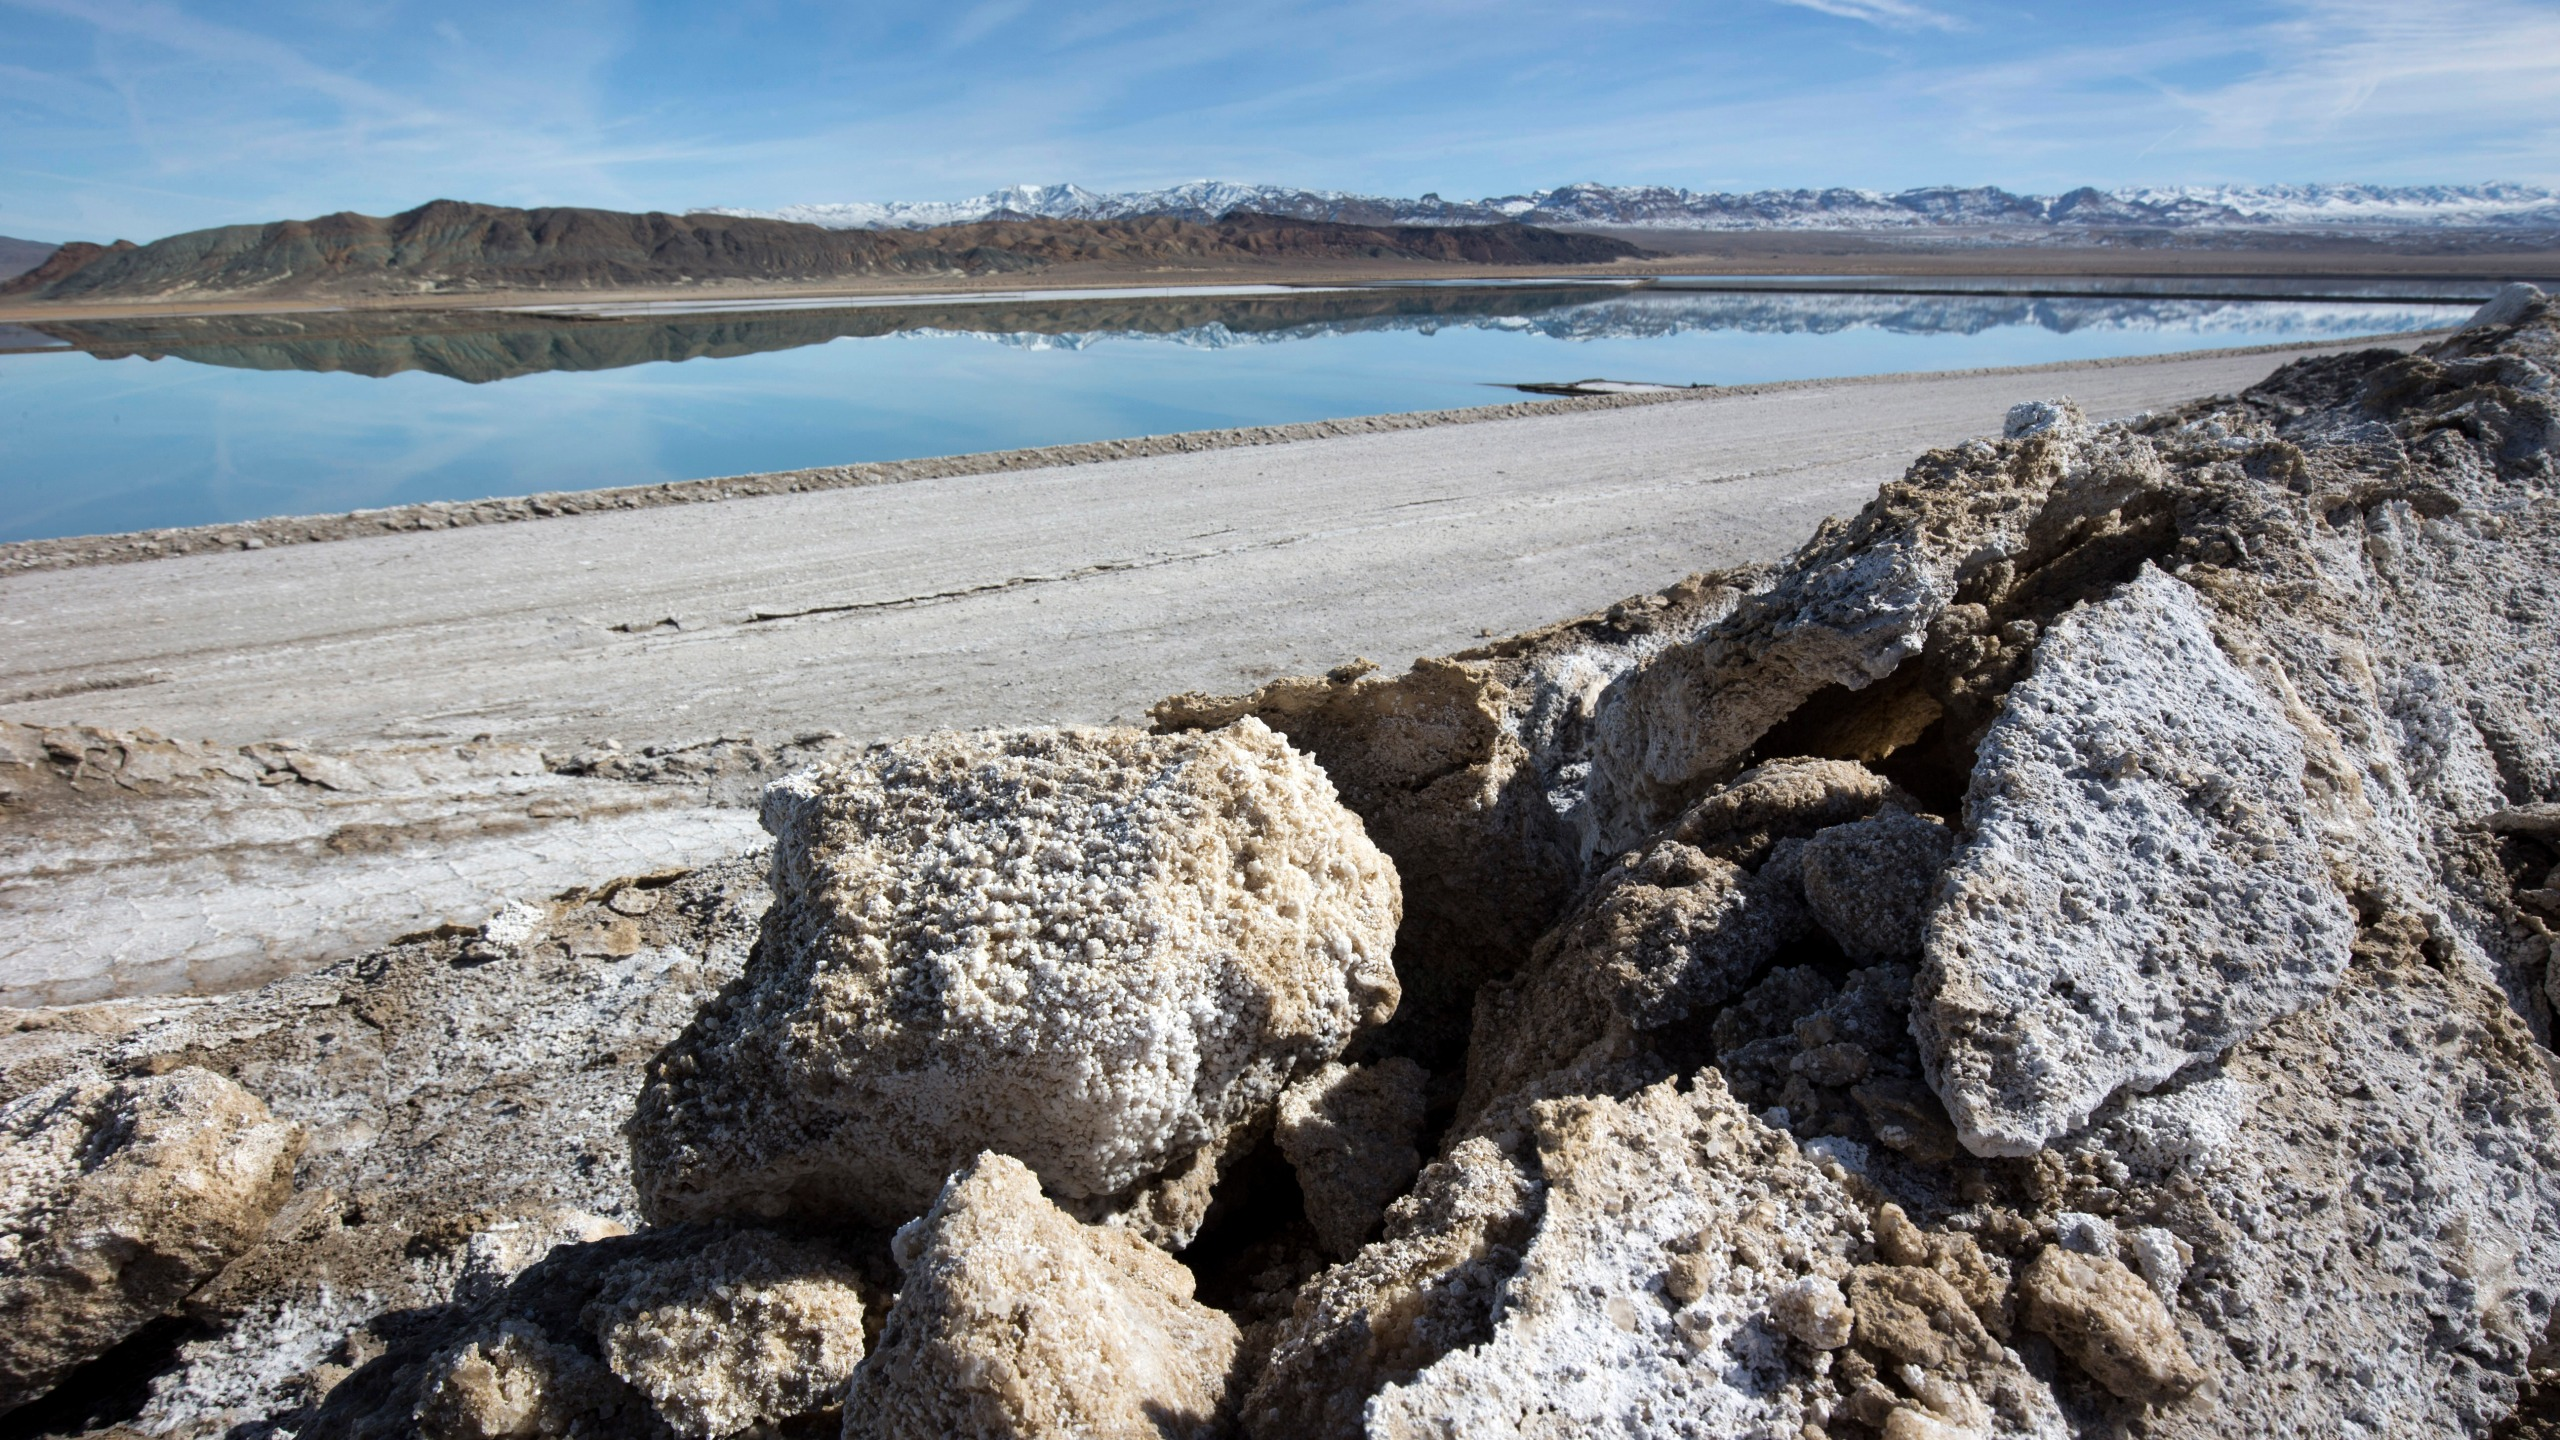 In this Jan. 30, 2017, file photo, waste salt, foreground, is shown near an evaporation pond at the Silver Peak lithium mine near Tonopah, Nev. (Steve Marcus/Las Vegas Sun via AP)